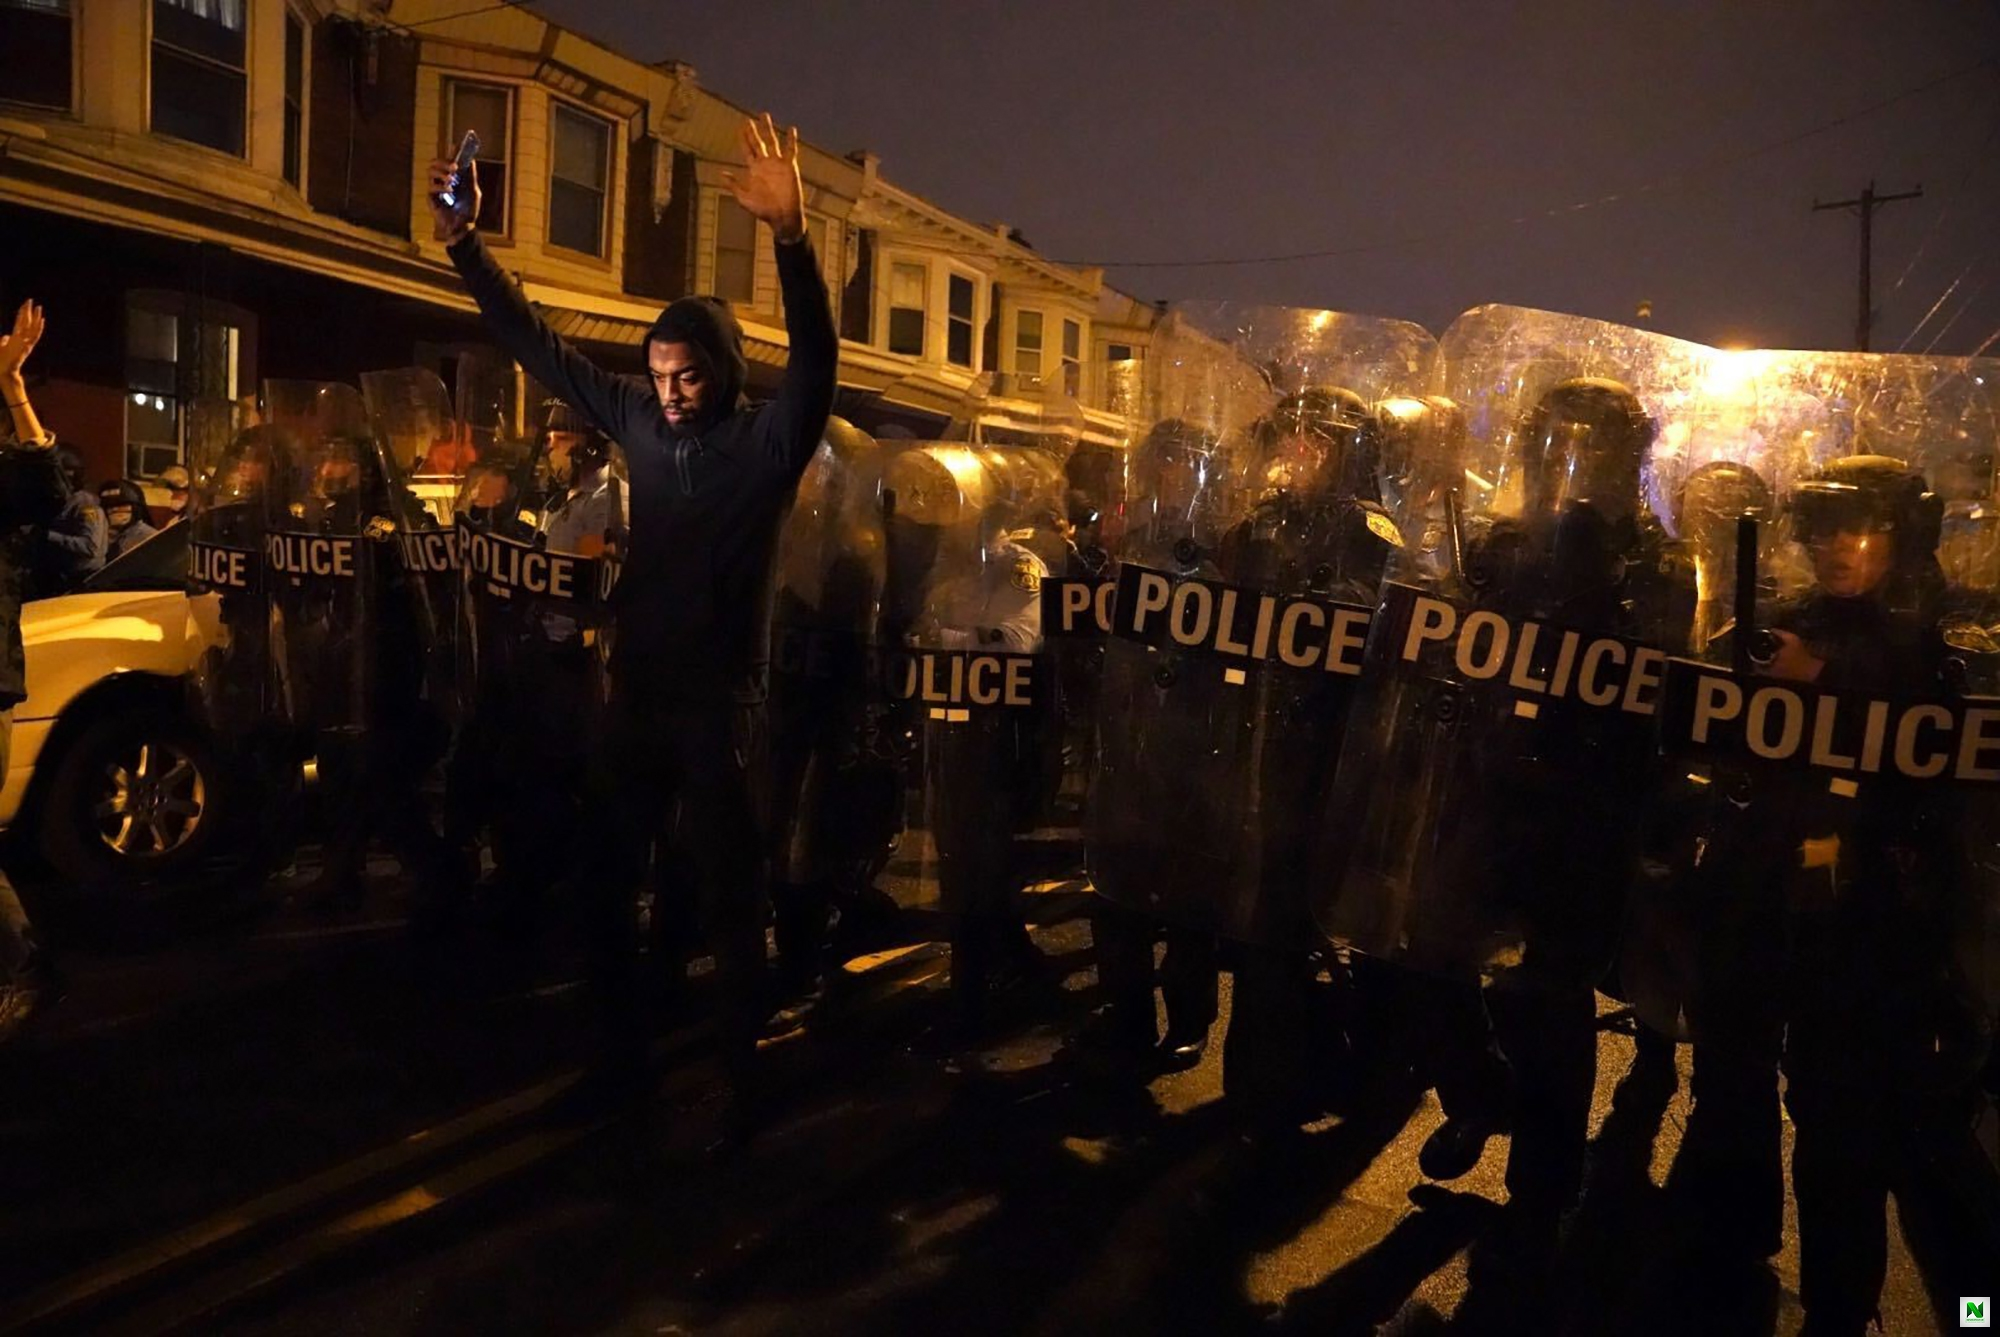 A Black American Shot Ten Times By US Police Officers, Sparks Protests (Video)